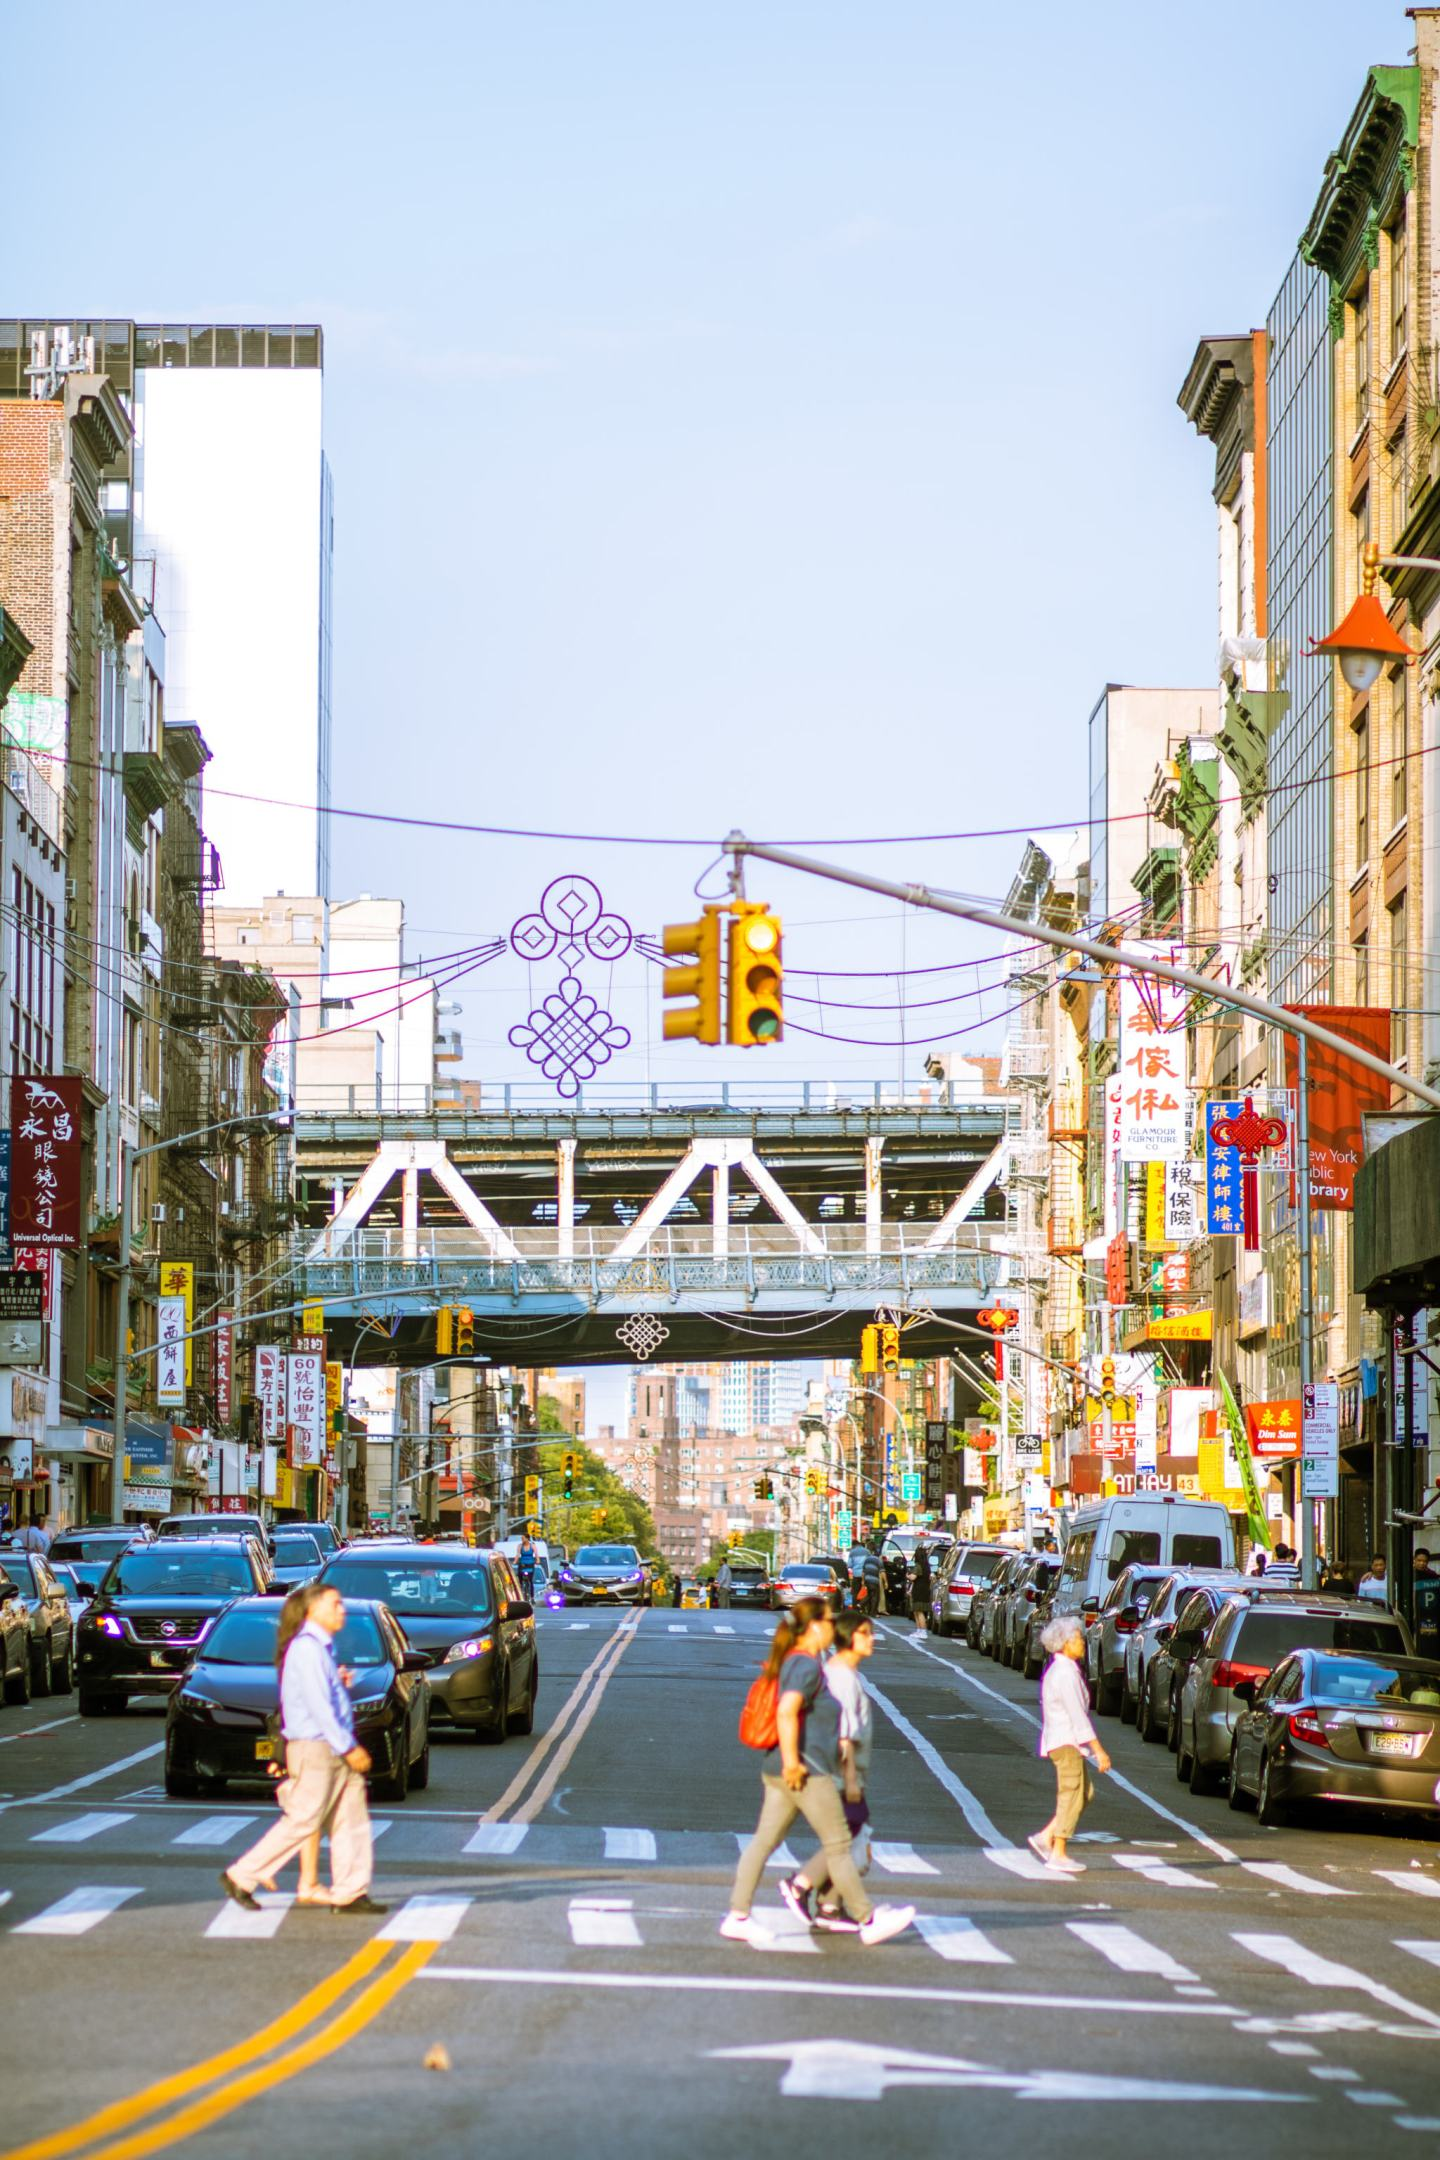 street view of Chinatown in Manhattan